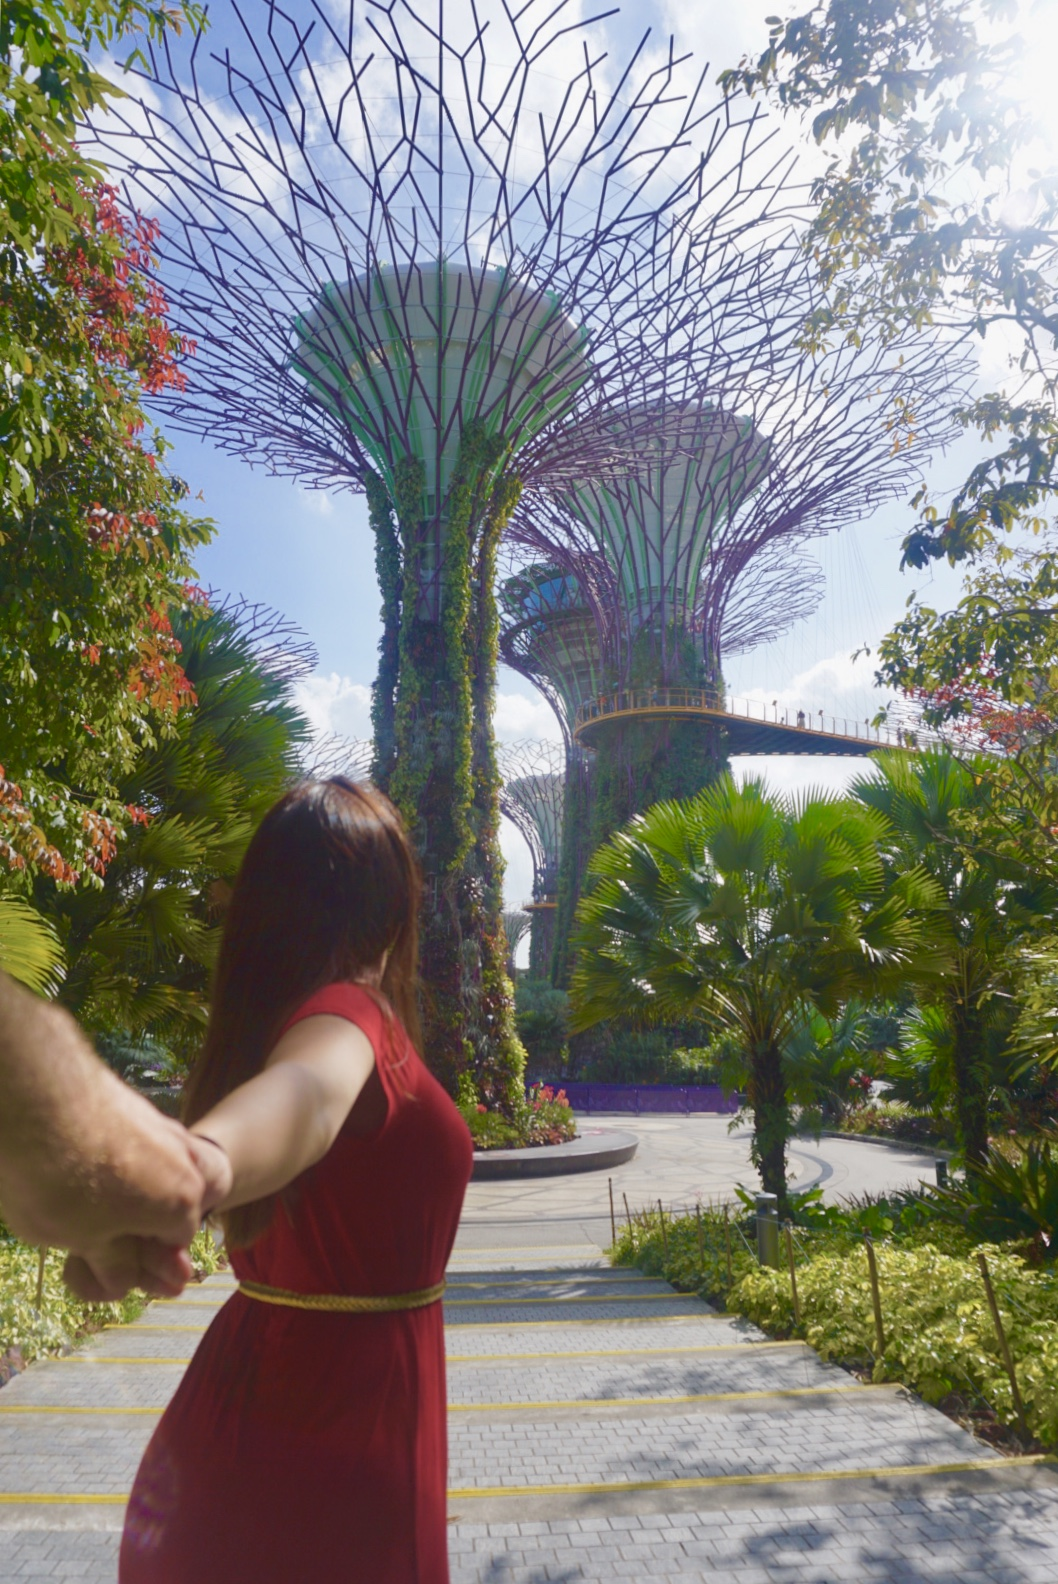 Follow me to the Singapore Gardens by the Bay. boldlygotravel.com